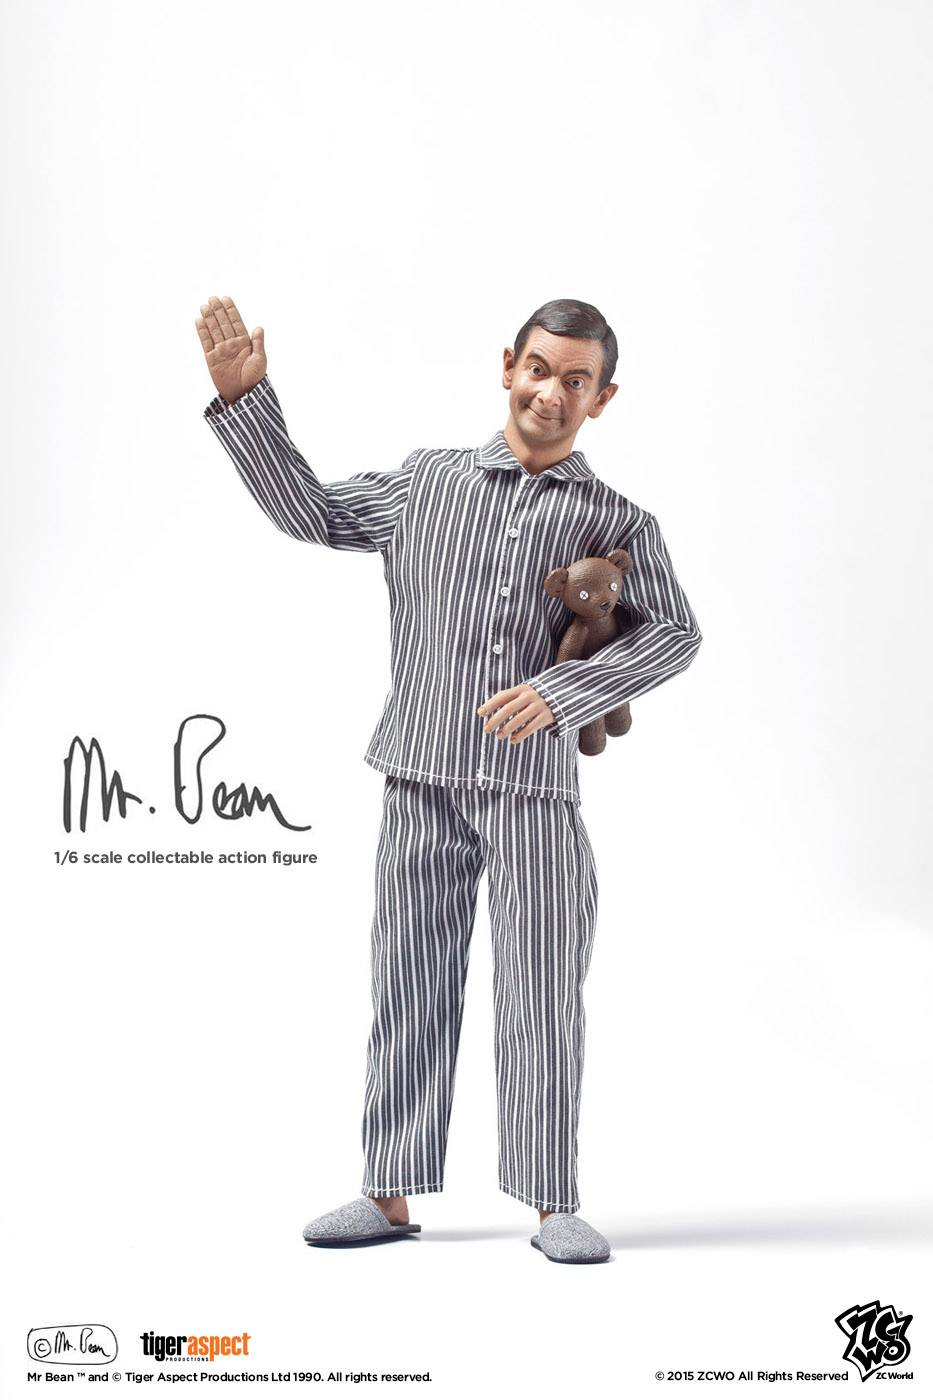 [ZCWO] Mr. Bean - 1/6 scale 150249ipppnxyn0ypw0w5e